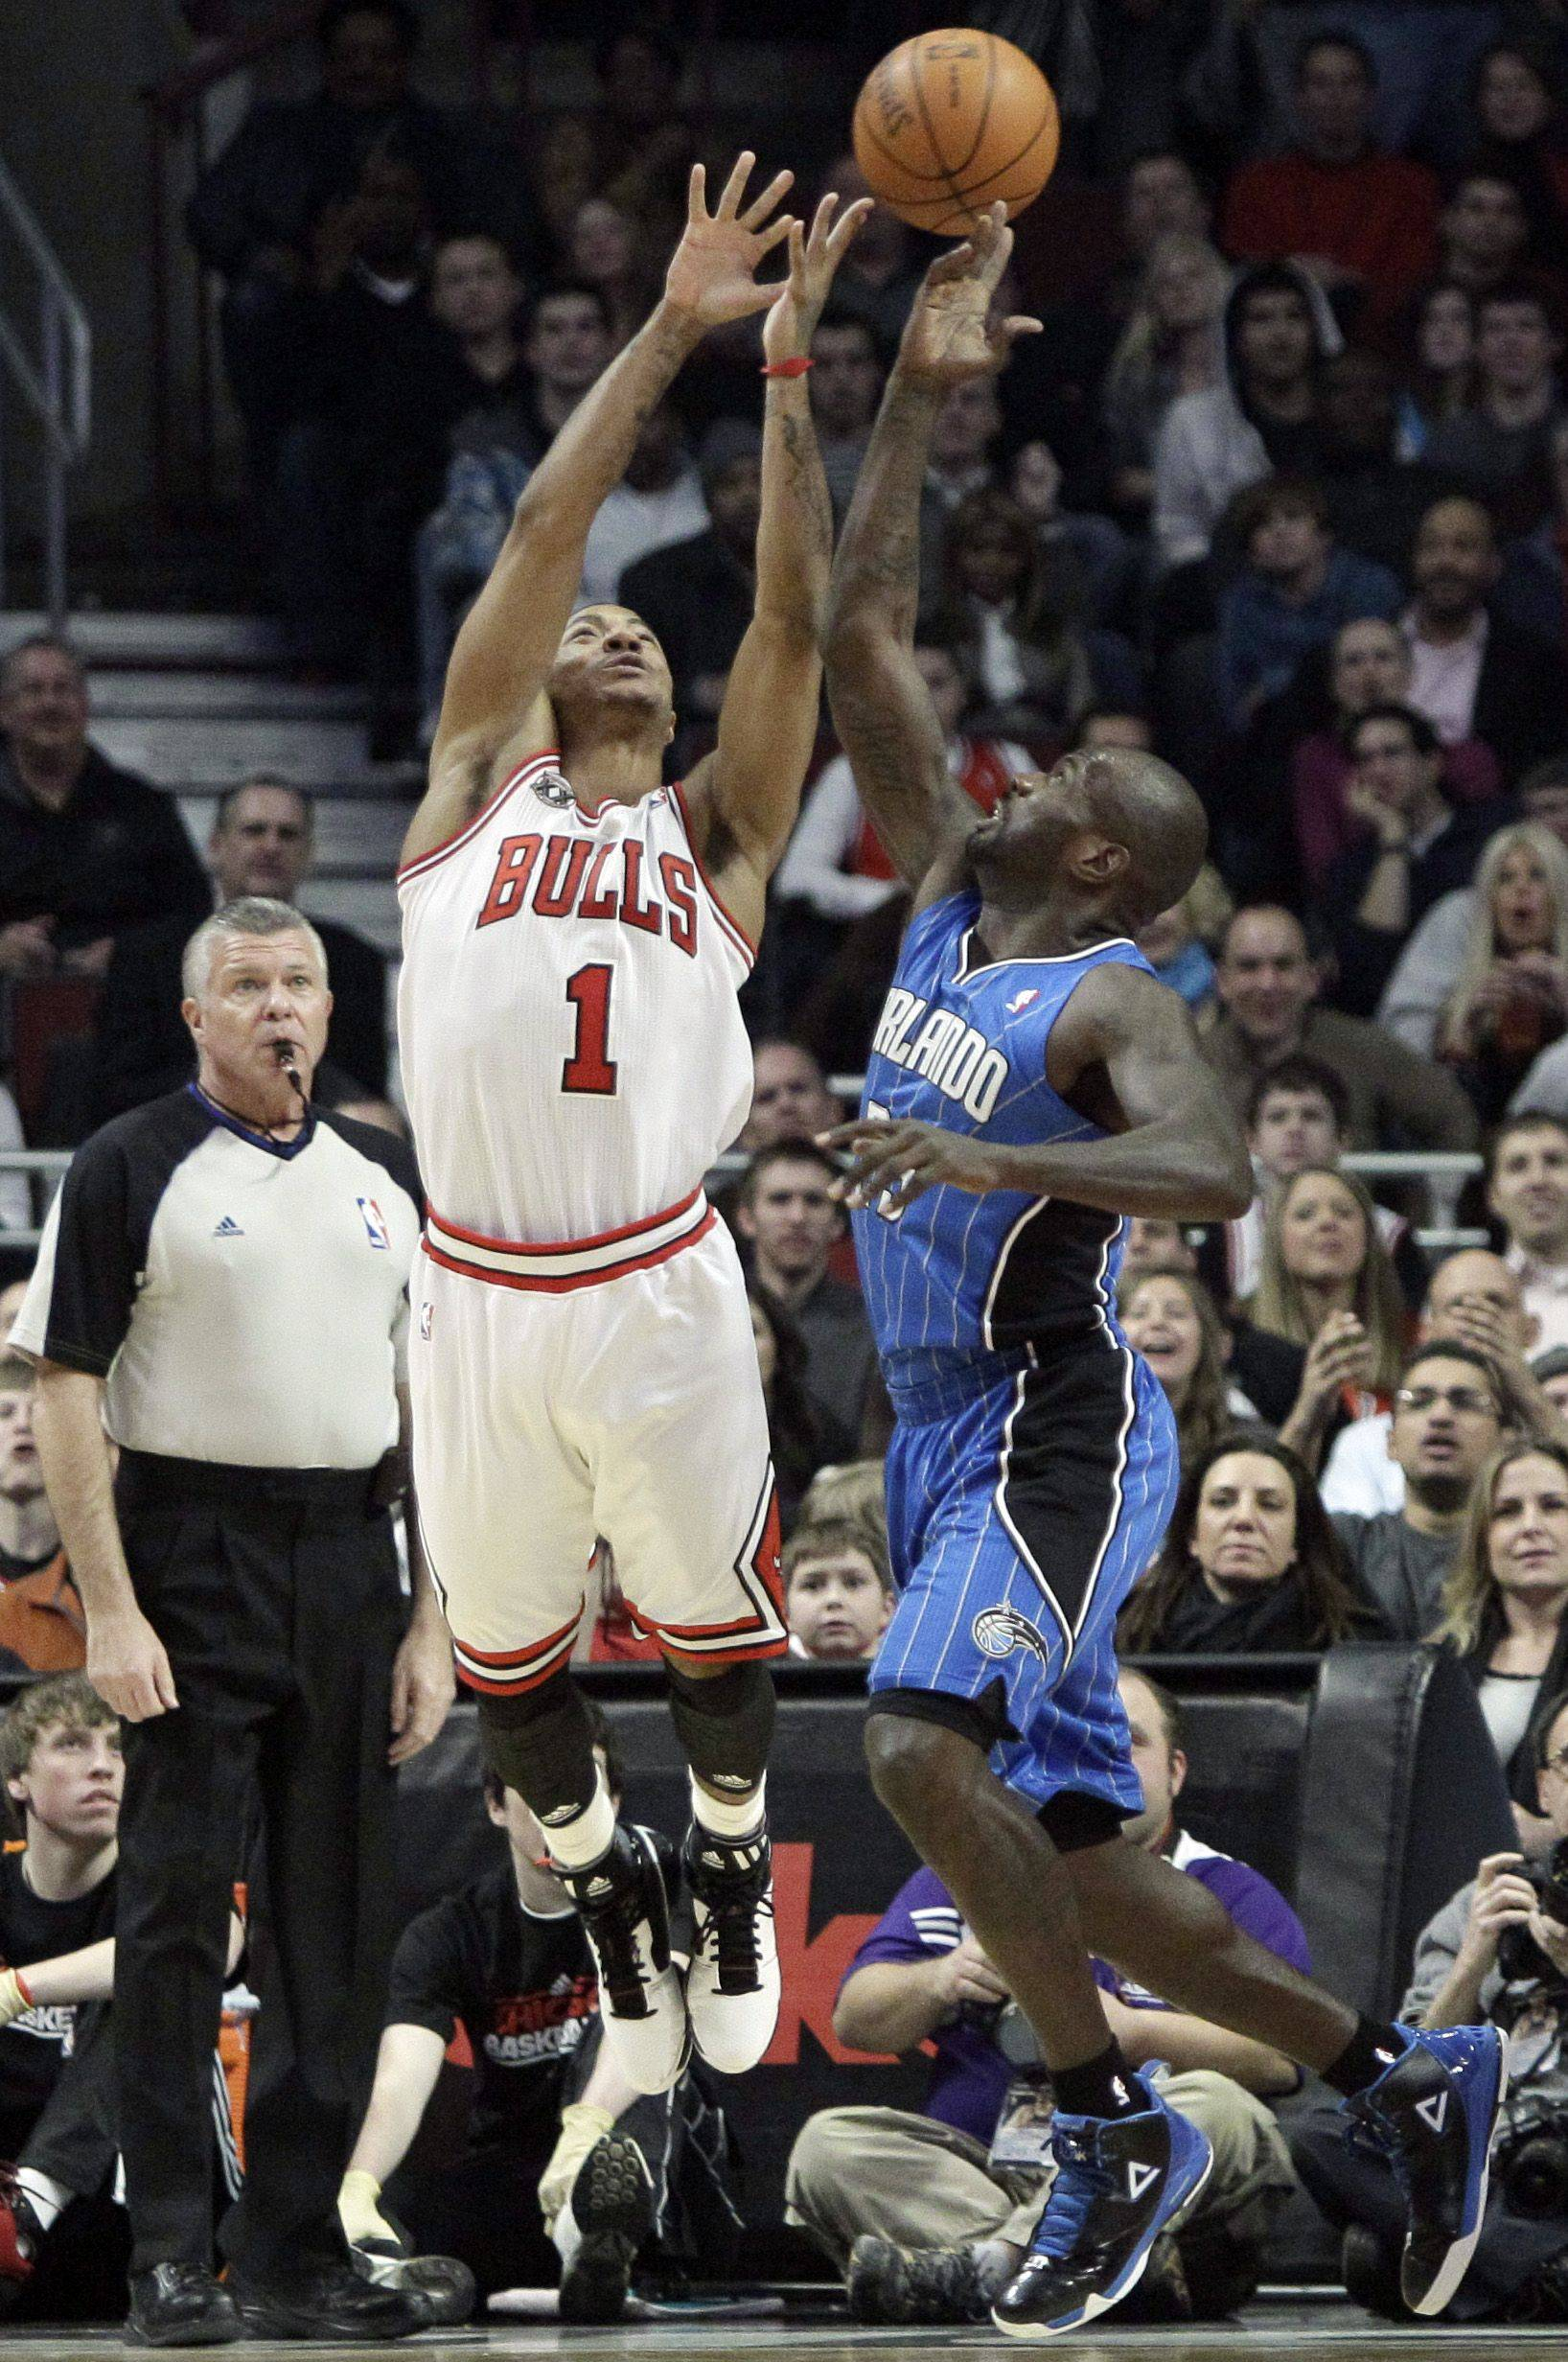 Chicago Bulls' Derrick Rose (1) and Orlando Magic's Jason Richardson battle for a loose ball during the first quarter of an NBA basketball game in Chicago, Friday, Jan. 28, 2011.